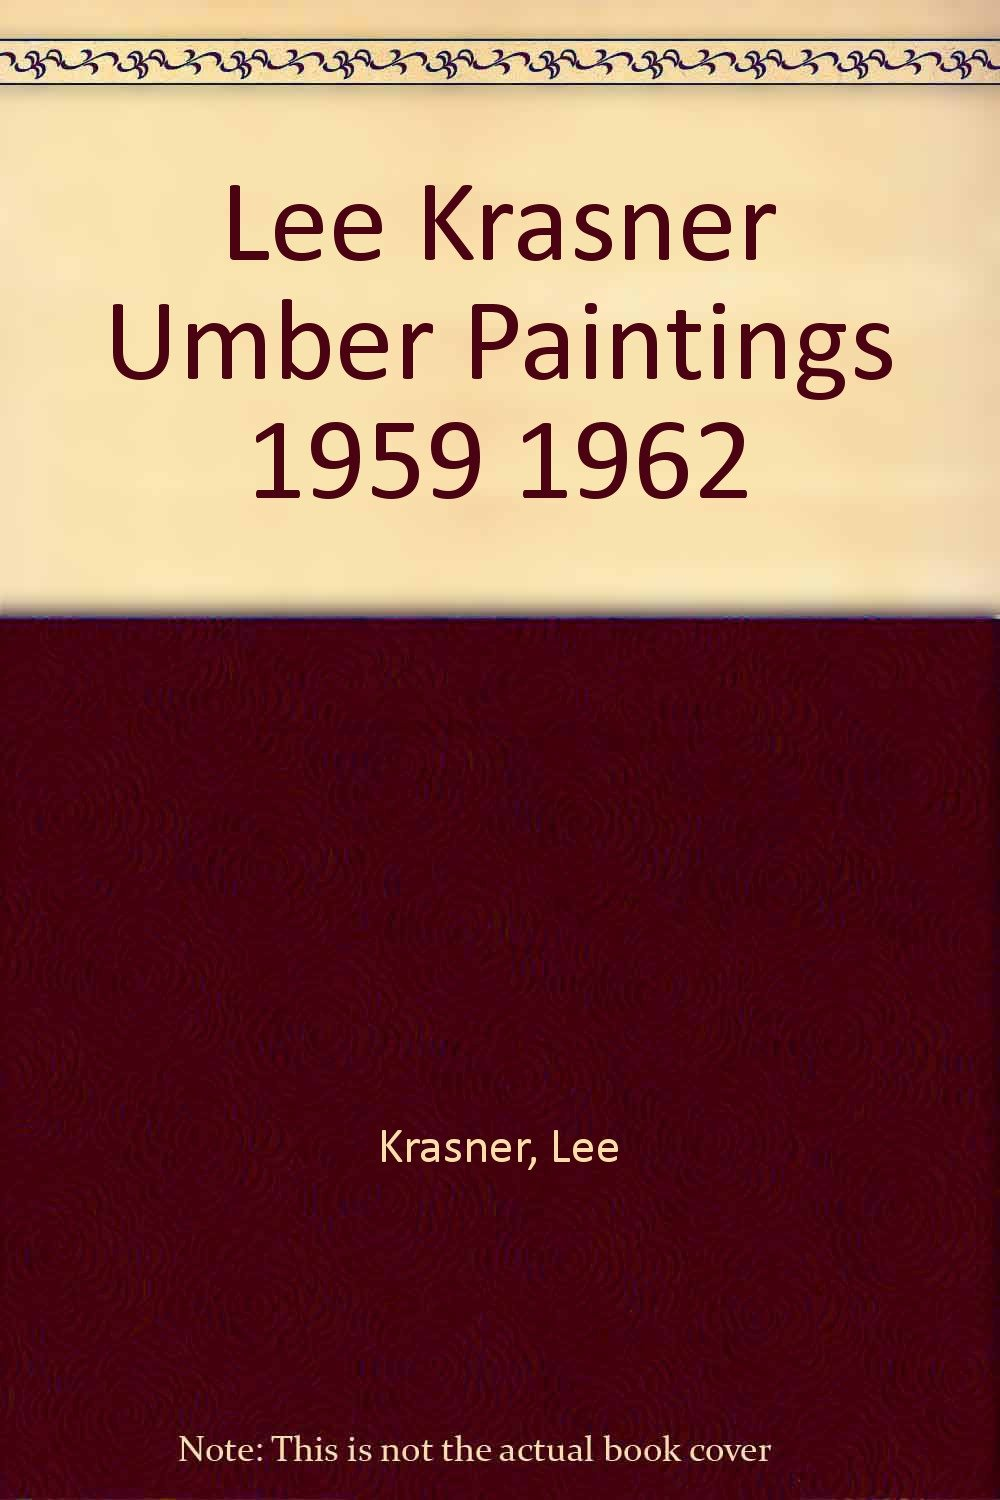 lee krasner the umber paintings 19591962